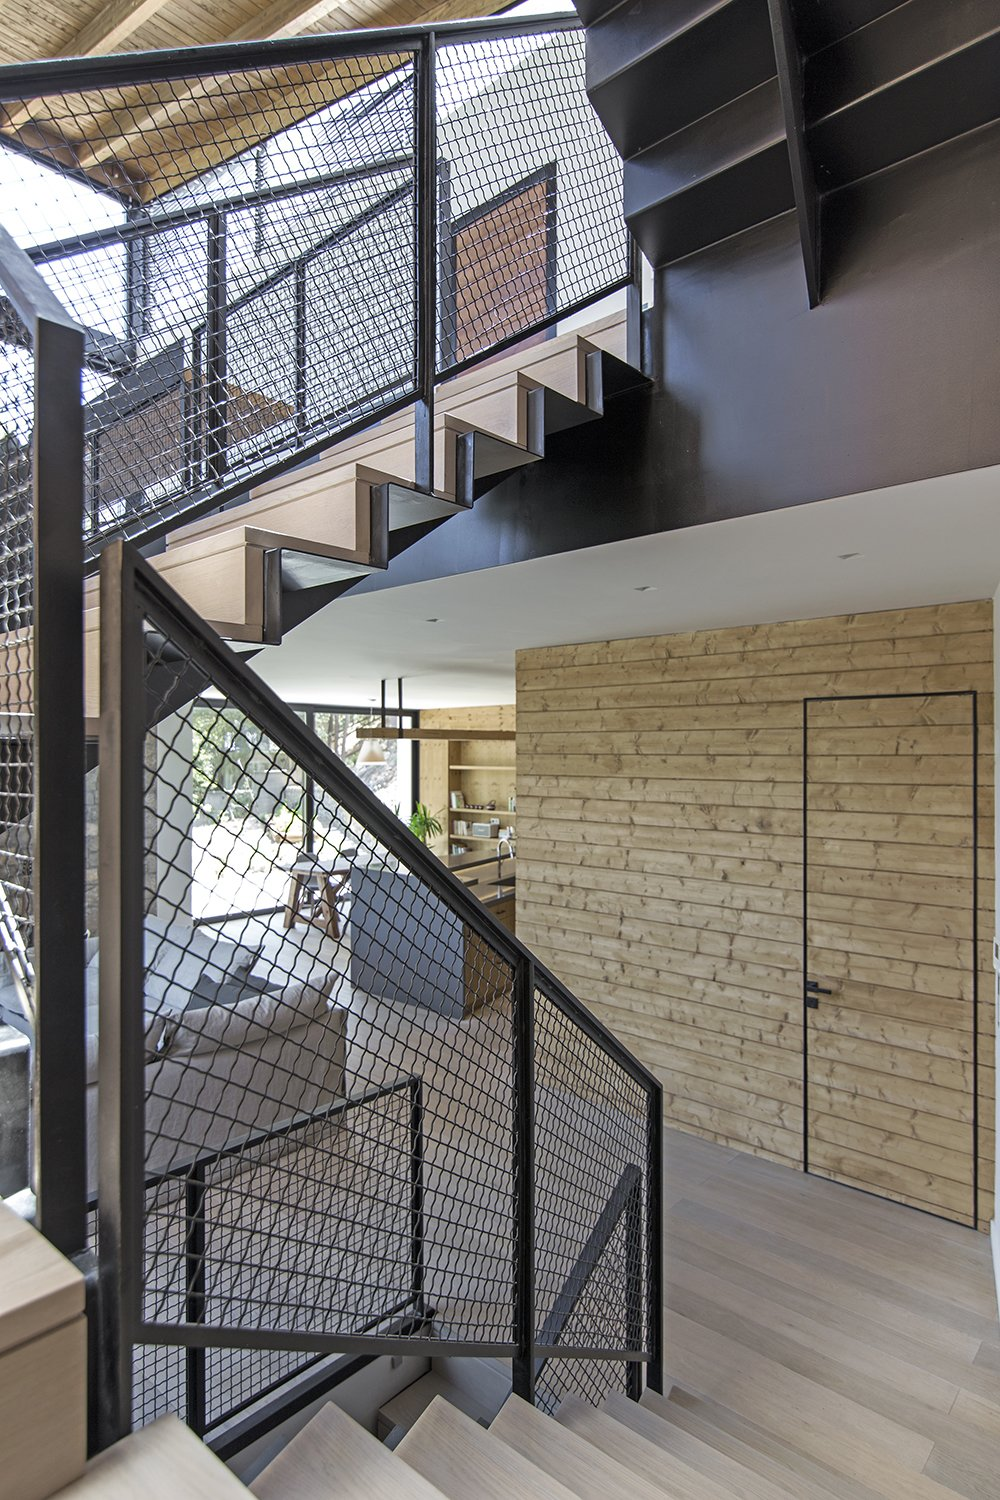 All finishes appear in their natural state Tagged: Staircase, Metal Tread, and Metal Railing.  The Wedge House